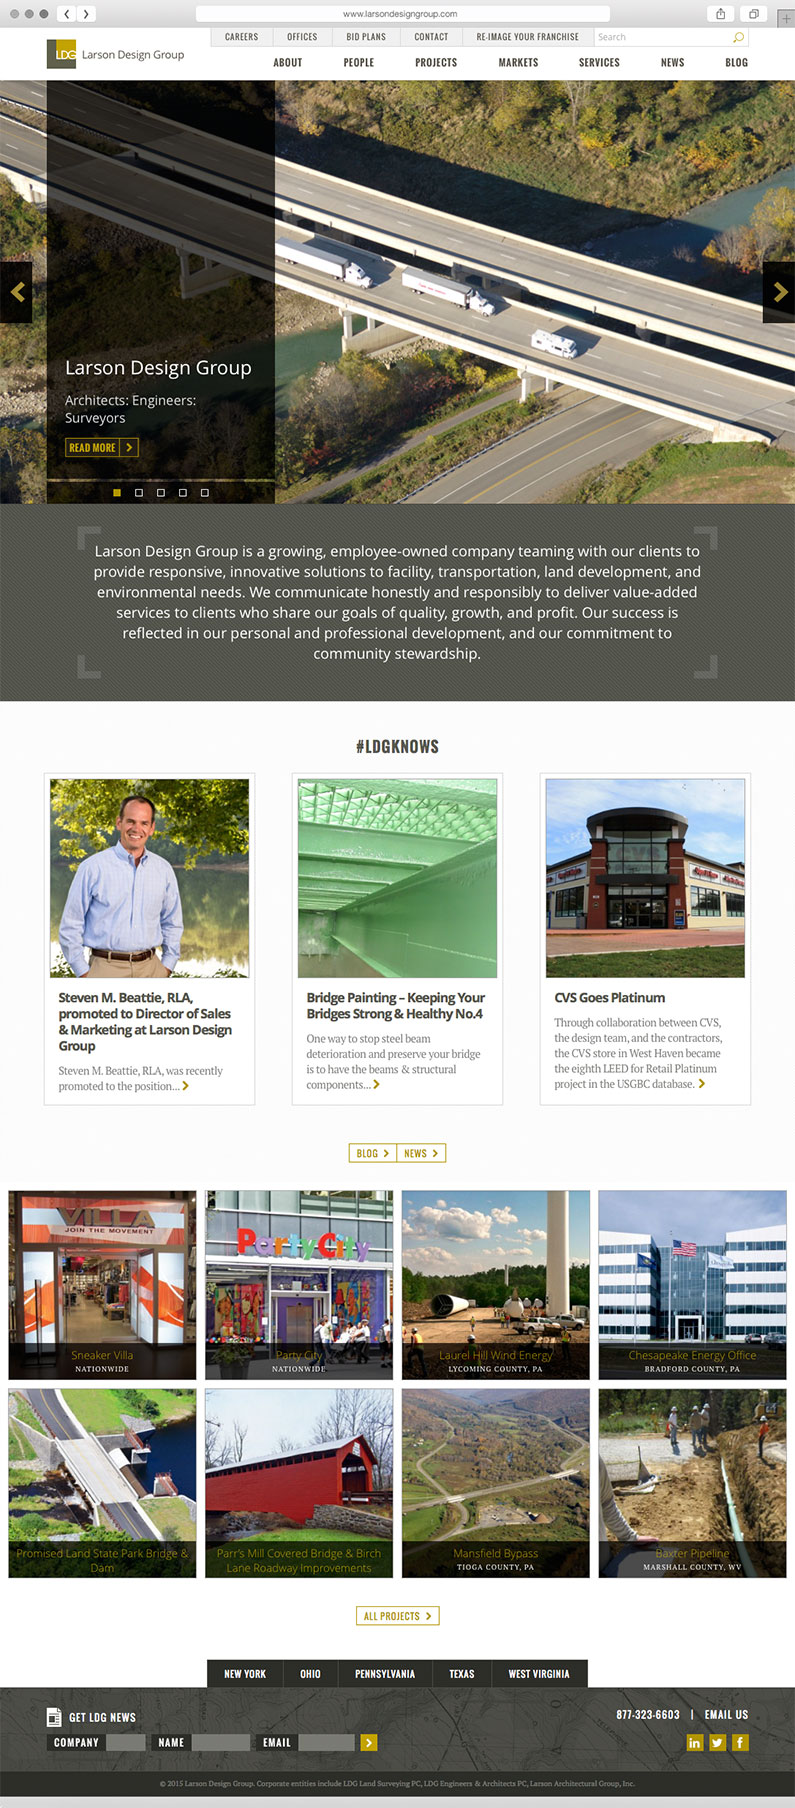 Full Page Website Design for Engineering Firm, Larson Design Group, Sitemap Planning, Website Design, Web Design, Web Development, Larson Design Group site